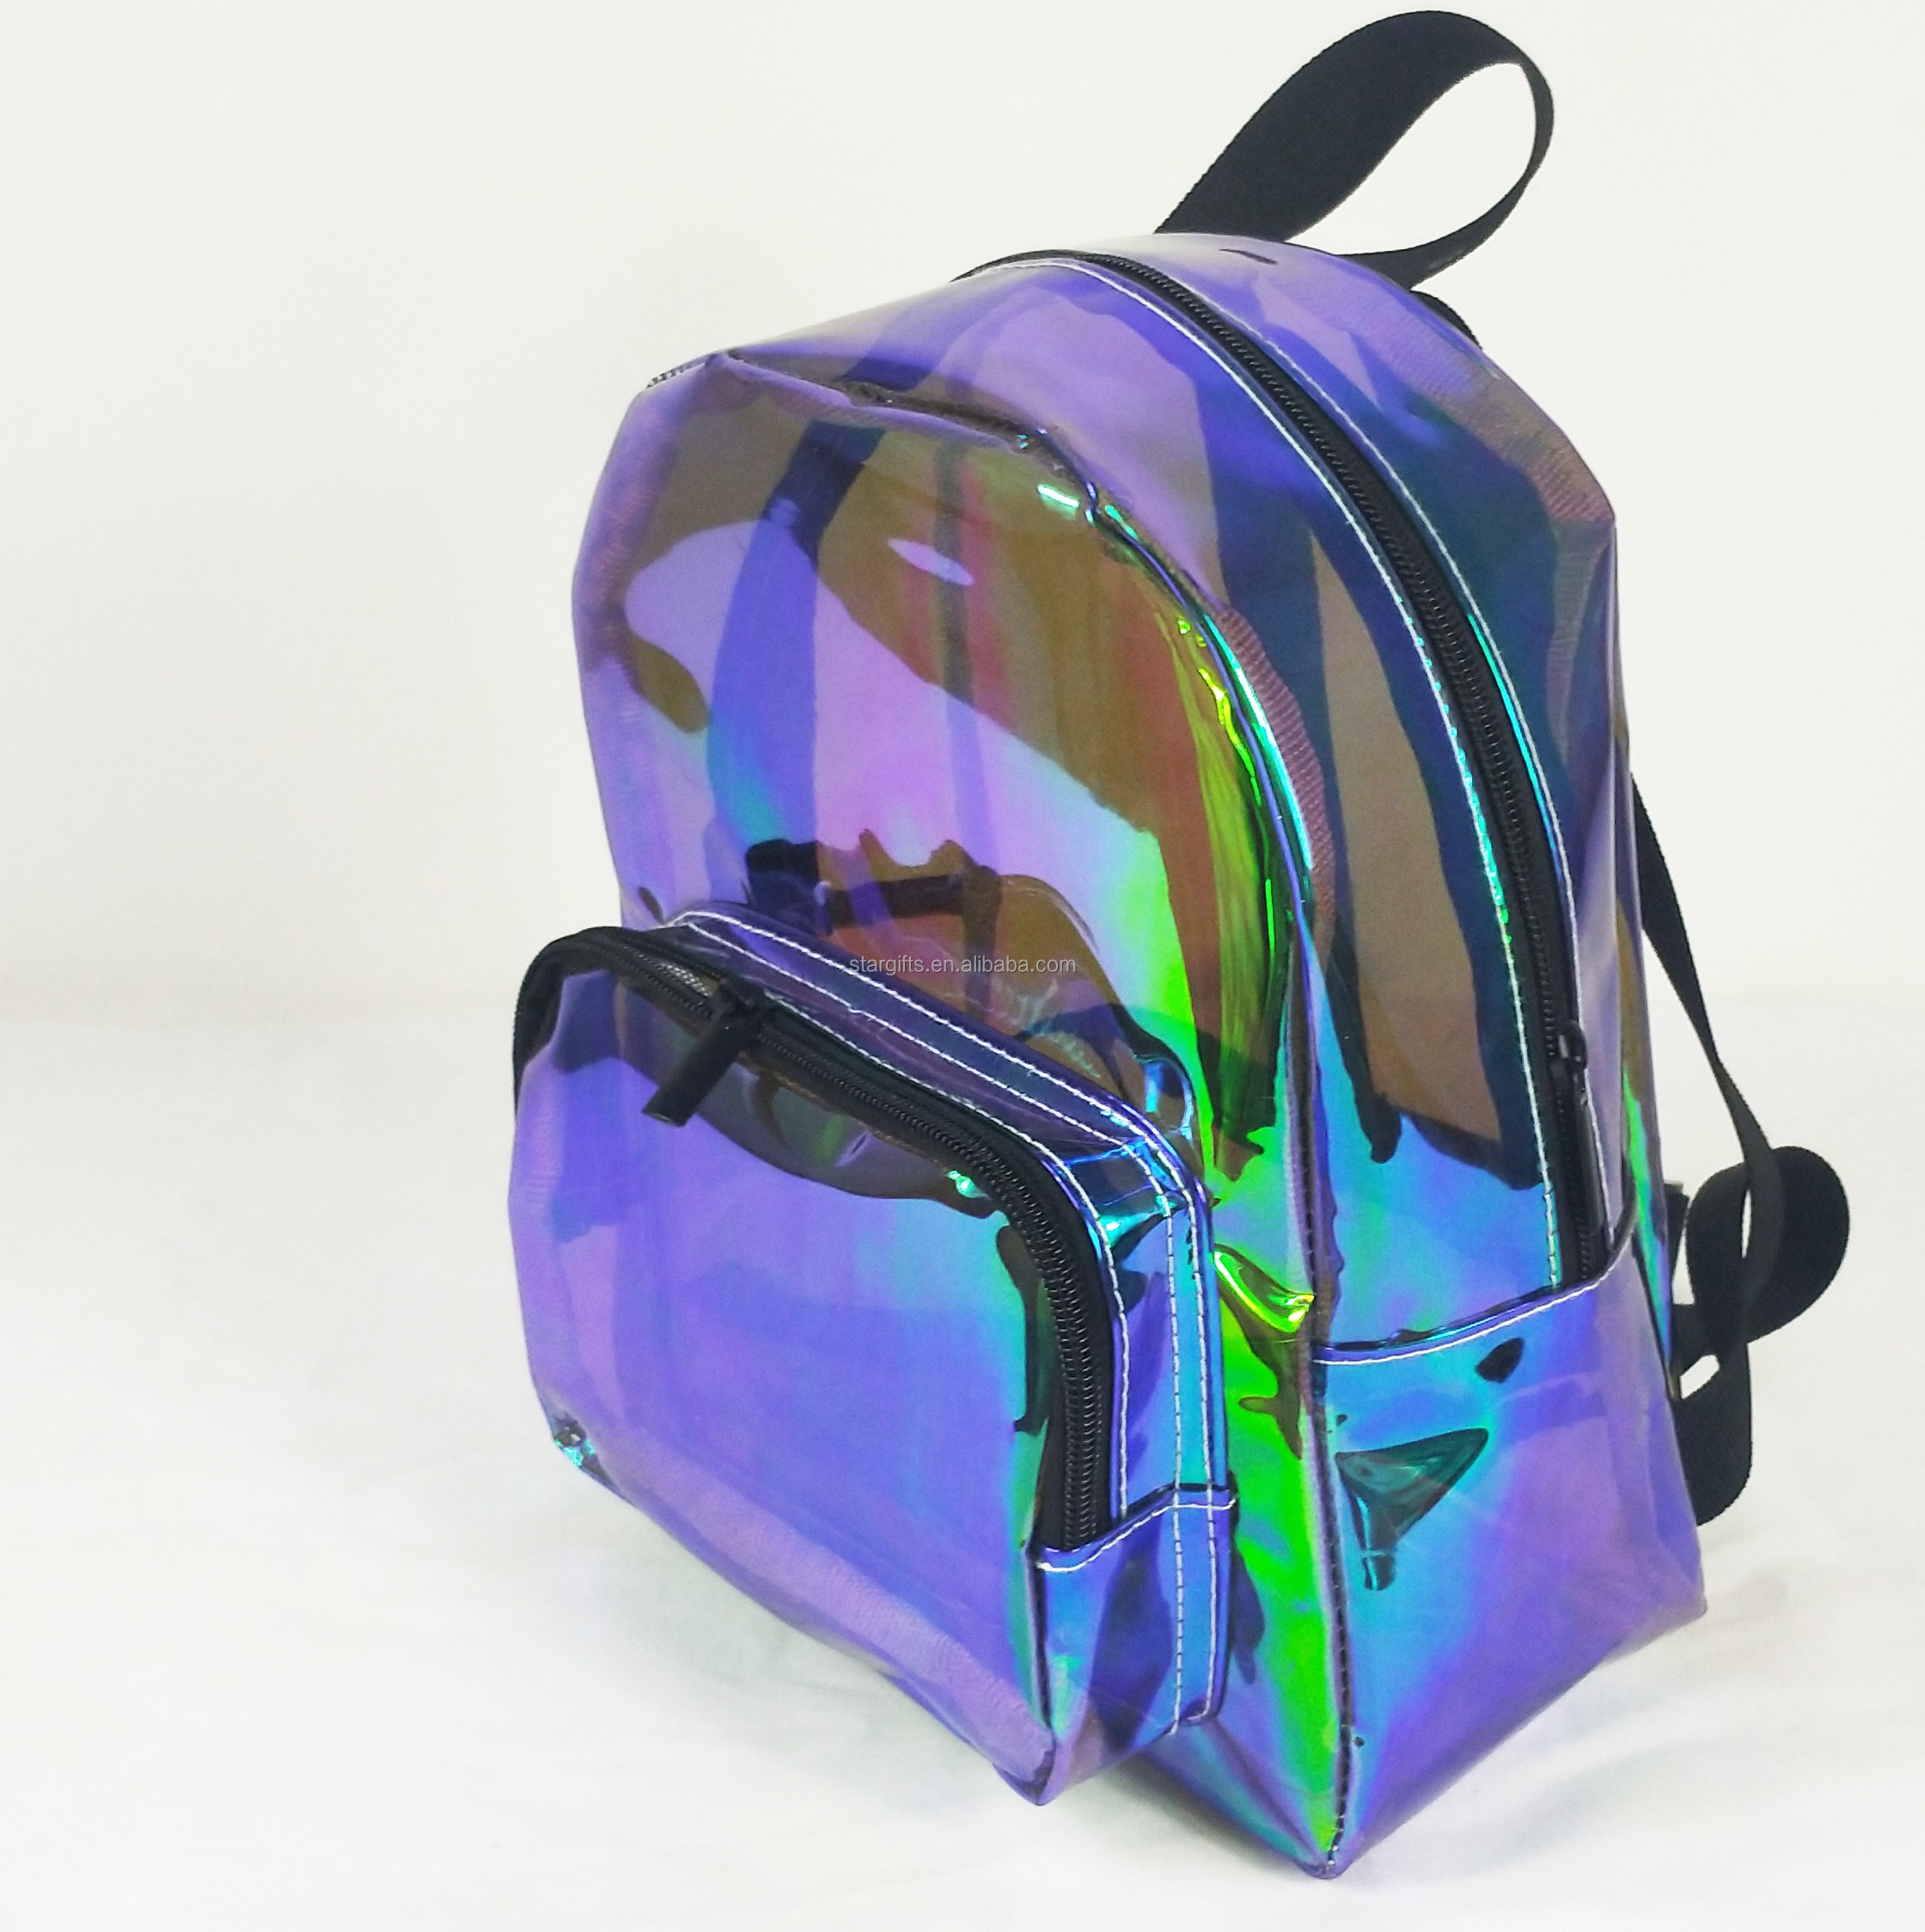 2019 New Fashion Design Colorful Eco Rucksack Transparent PVC Clear Set Backpack with Makeup Pouch